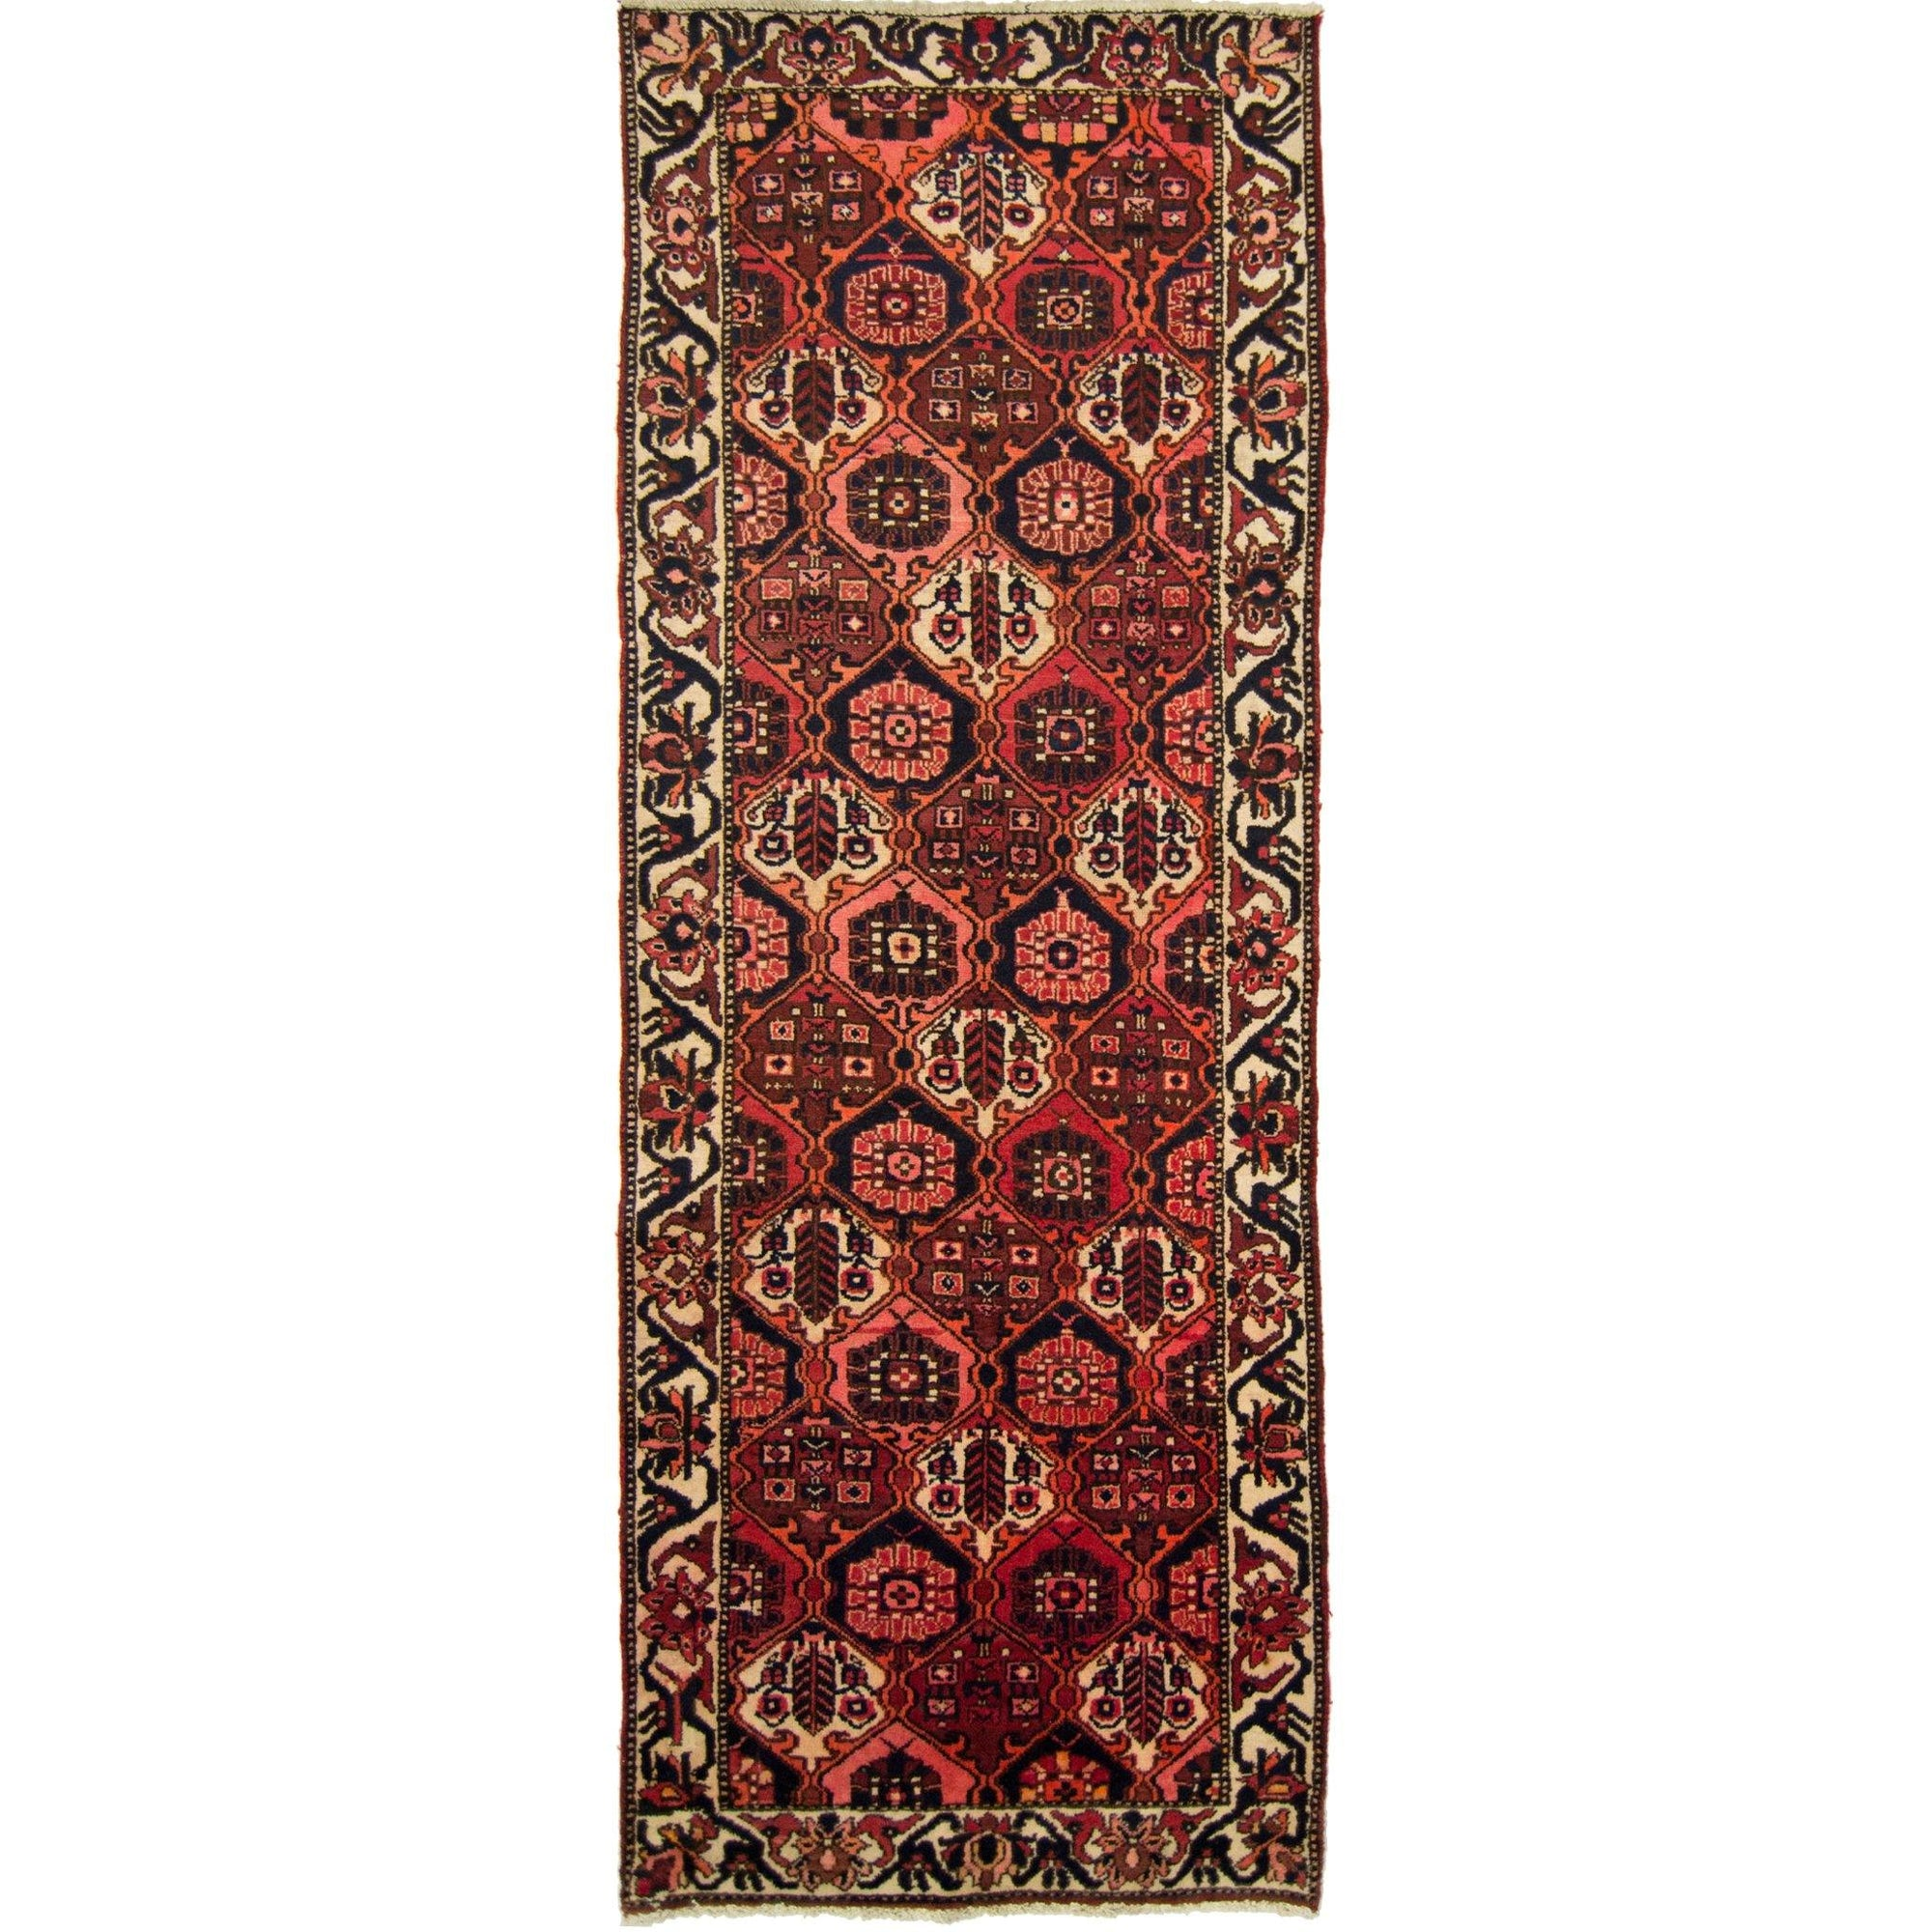 Beautiful Hand-knotted Persian Wool Bakhtiari Runner 105cm x 289cm Persian-Rug | House-of-Haghi | NewMarket | Auckland | NZ | Handmade Persian Rugs | Hand Knotted Persian Rugs